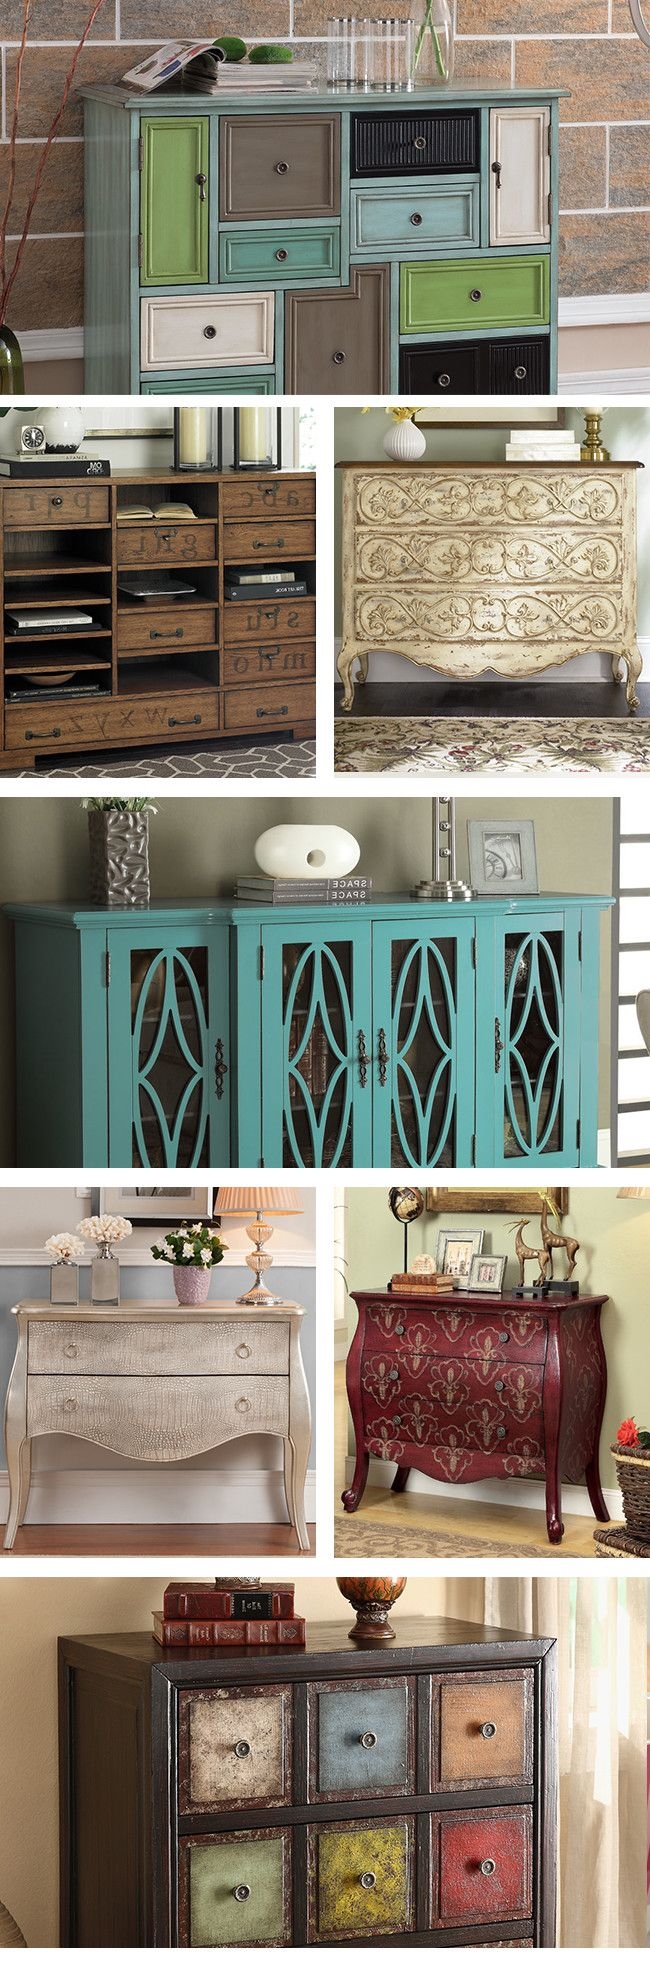 An accent chest makes for the perfect addition to any room. Visit Wayfair and sign up today to get access to exclusive deals everyday up to 70% off. Free shipping on all orders over $49.